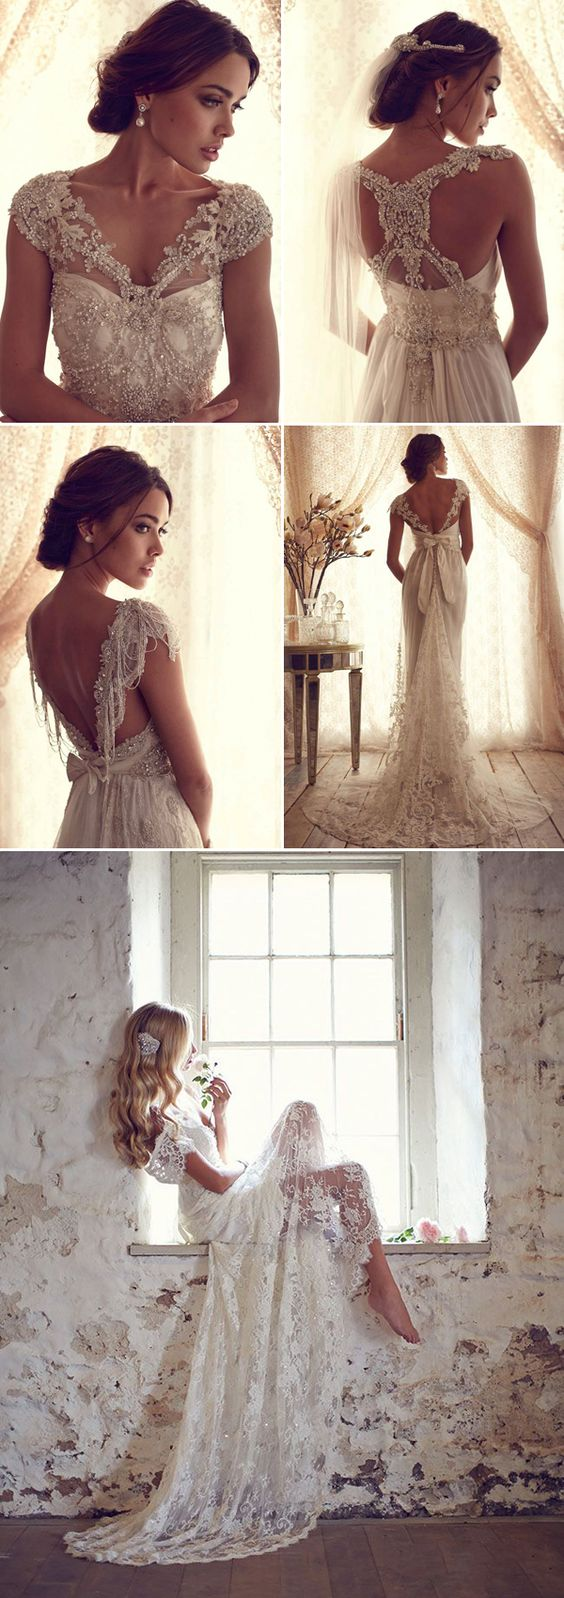 48 Prettiest Vintage Wedding Dresses You Will Love!: